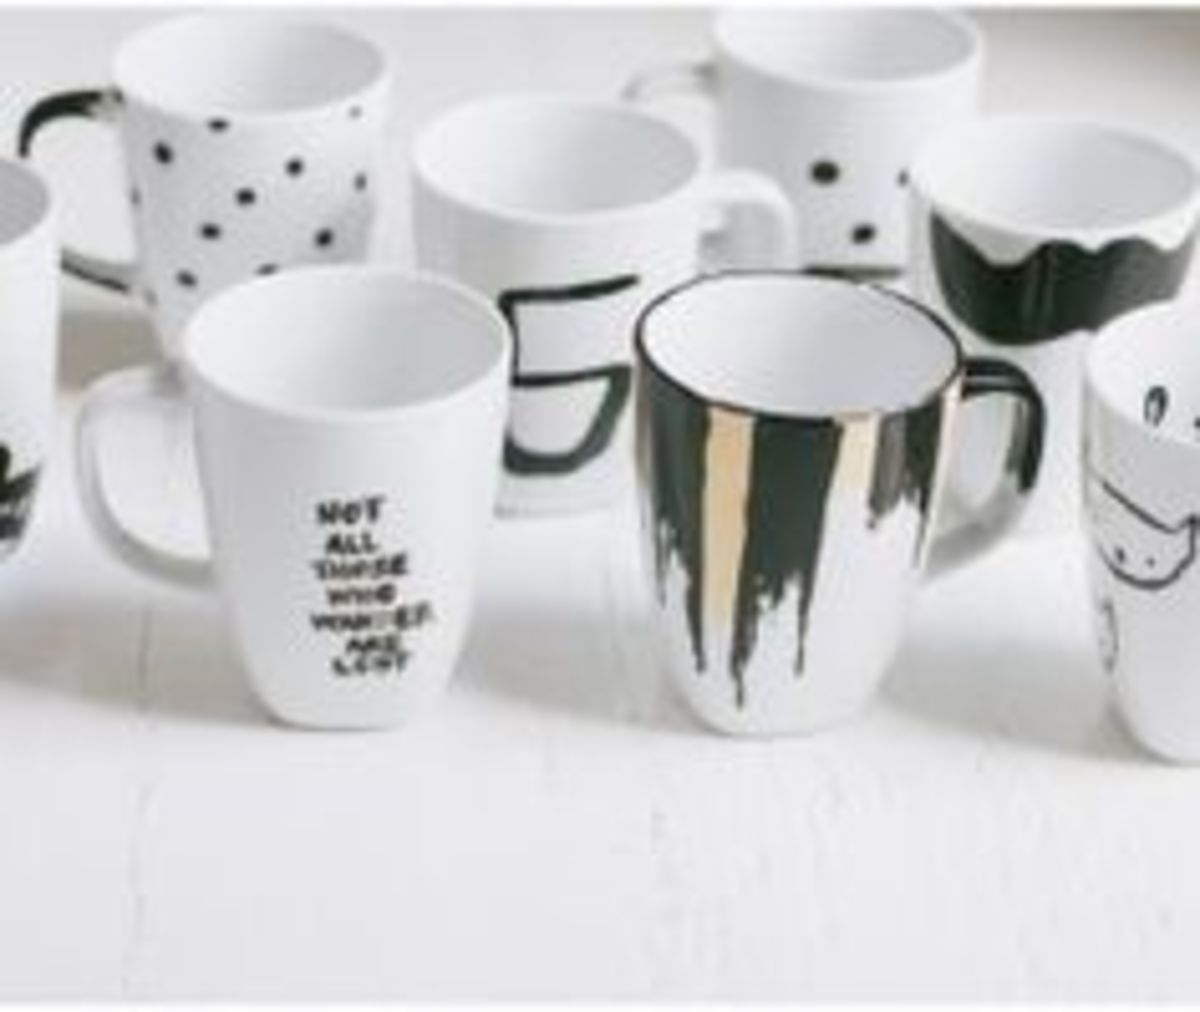 The possibilities are truly endless when you are designing your own coffee mugs!